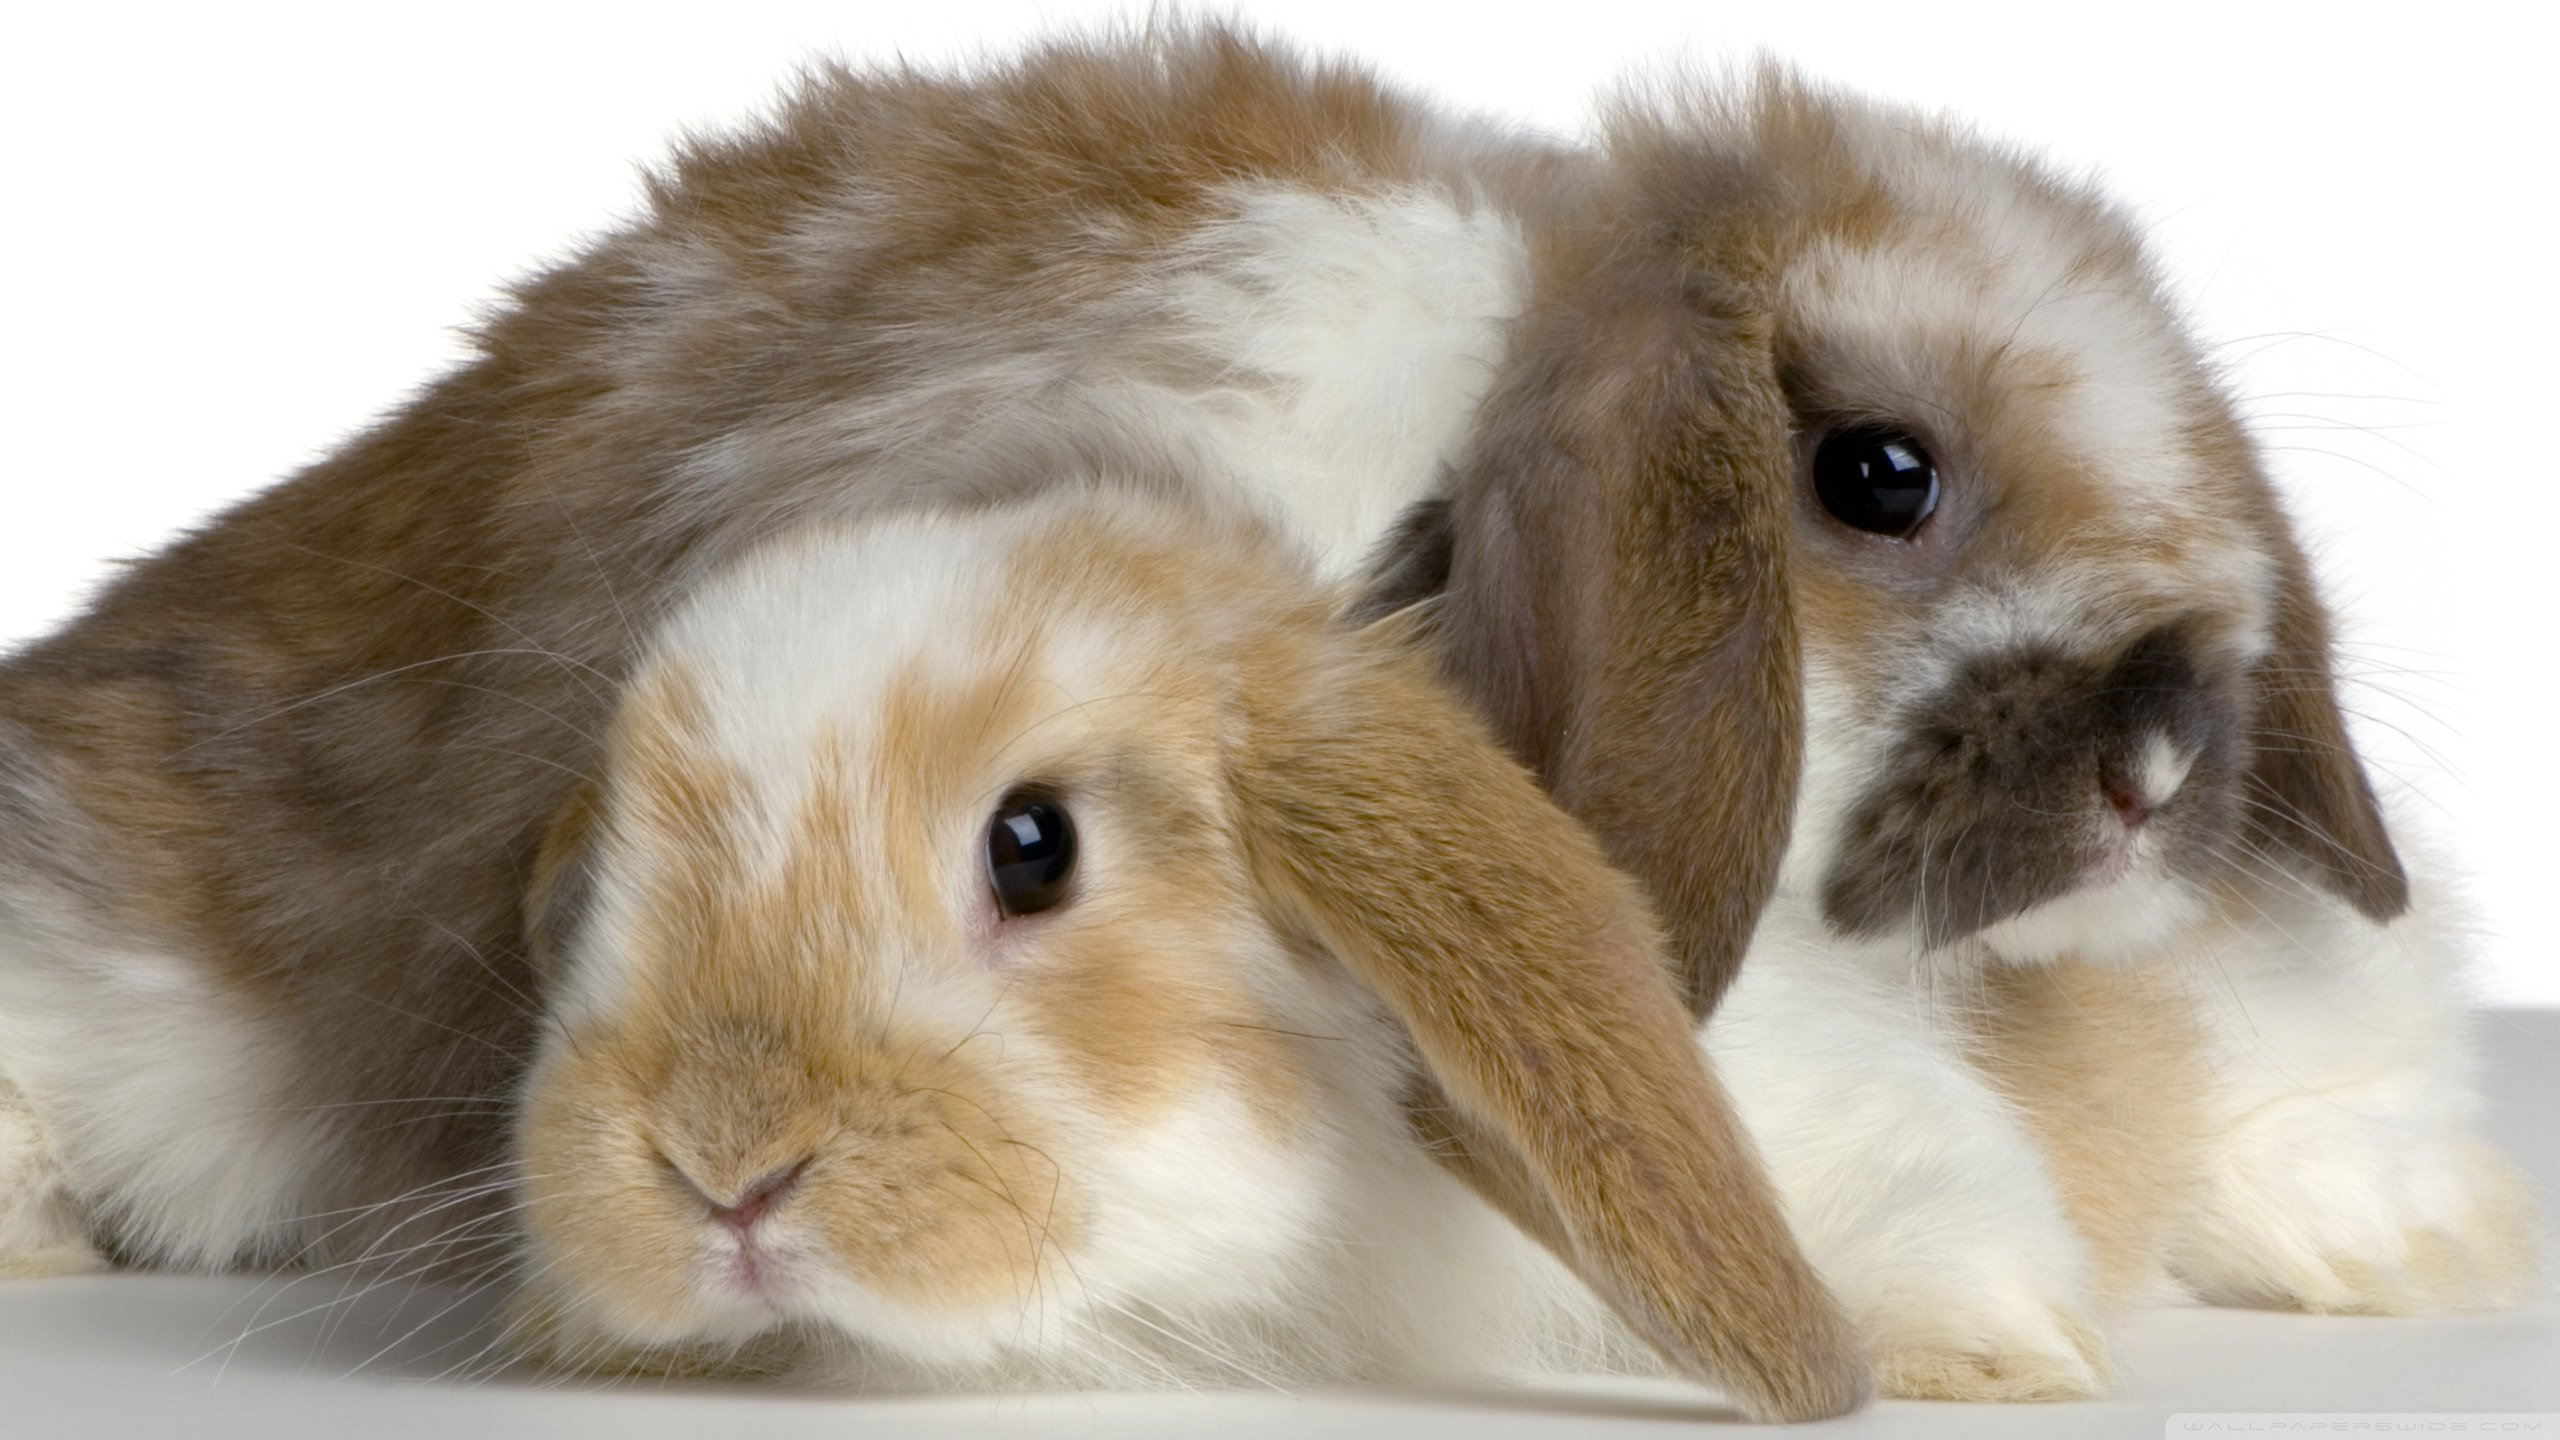 Download hd 2560x1440 Rabbit & Bunny desktop background ID:249094 for free